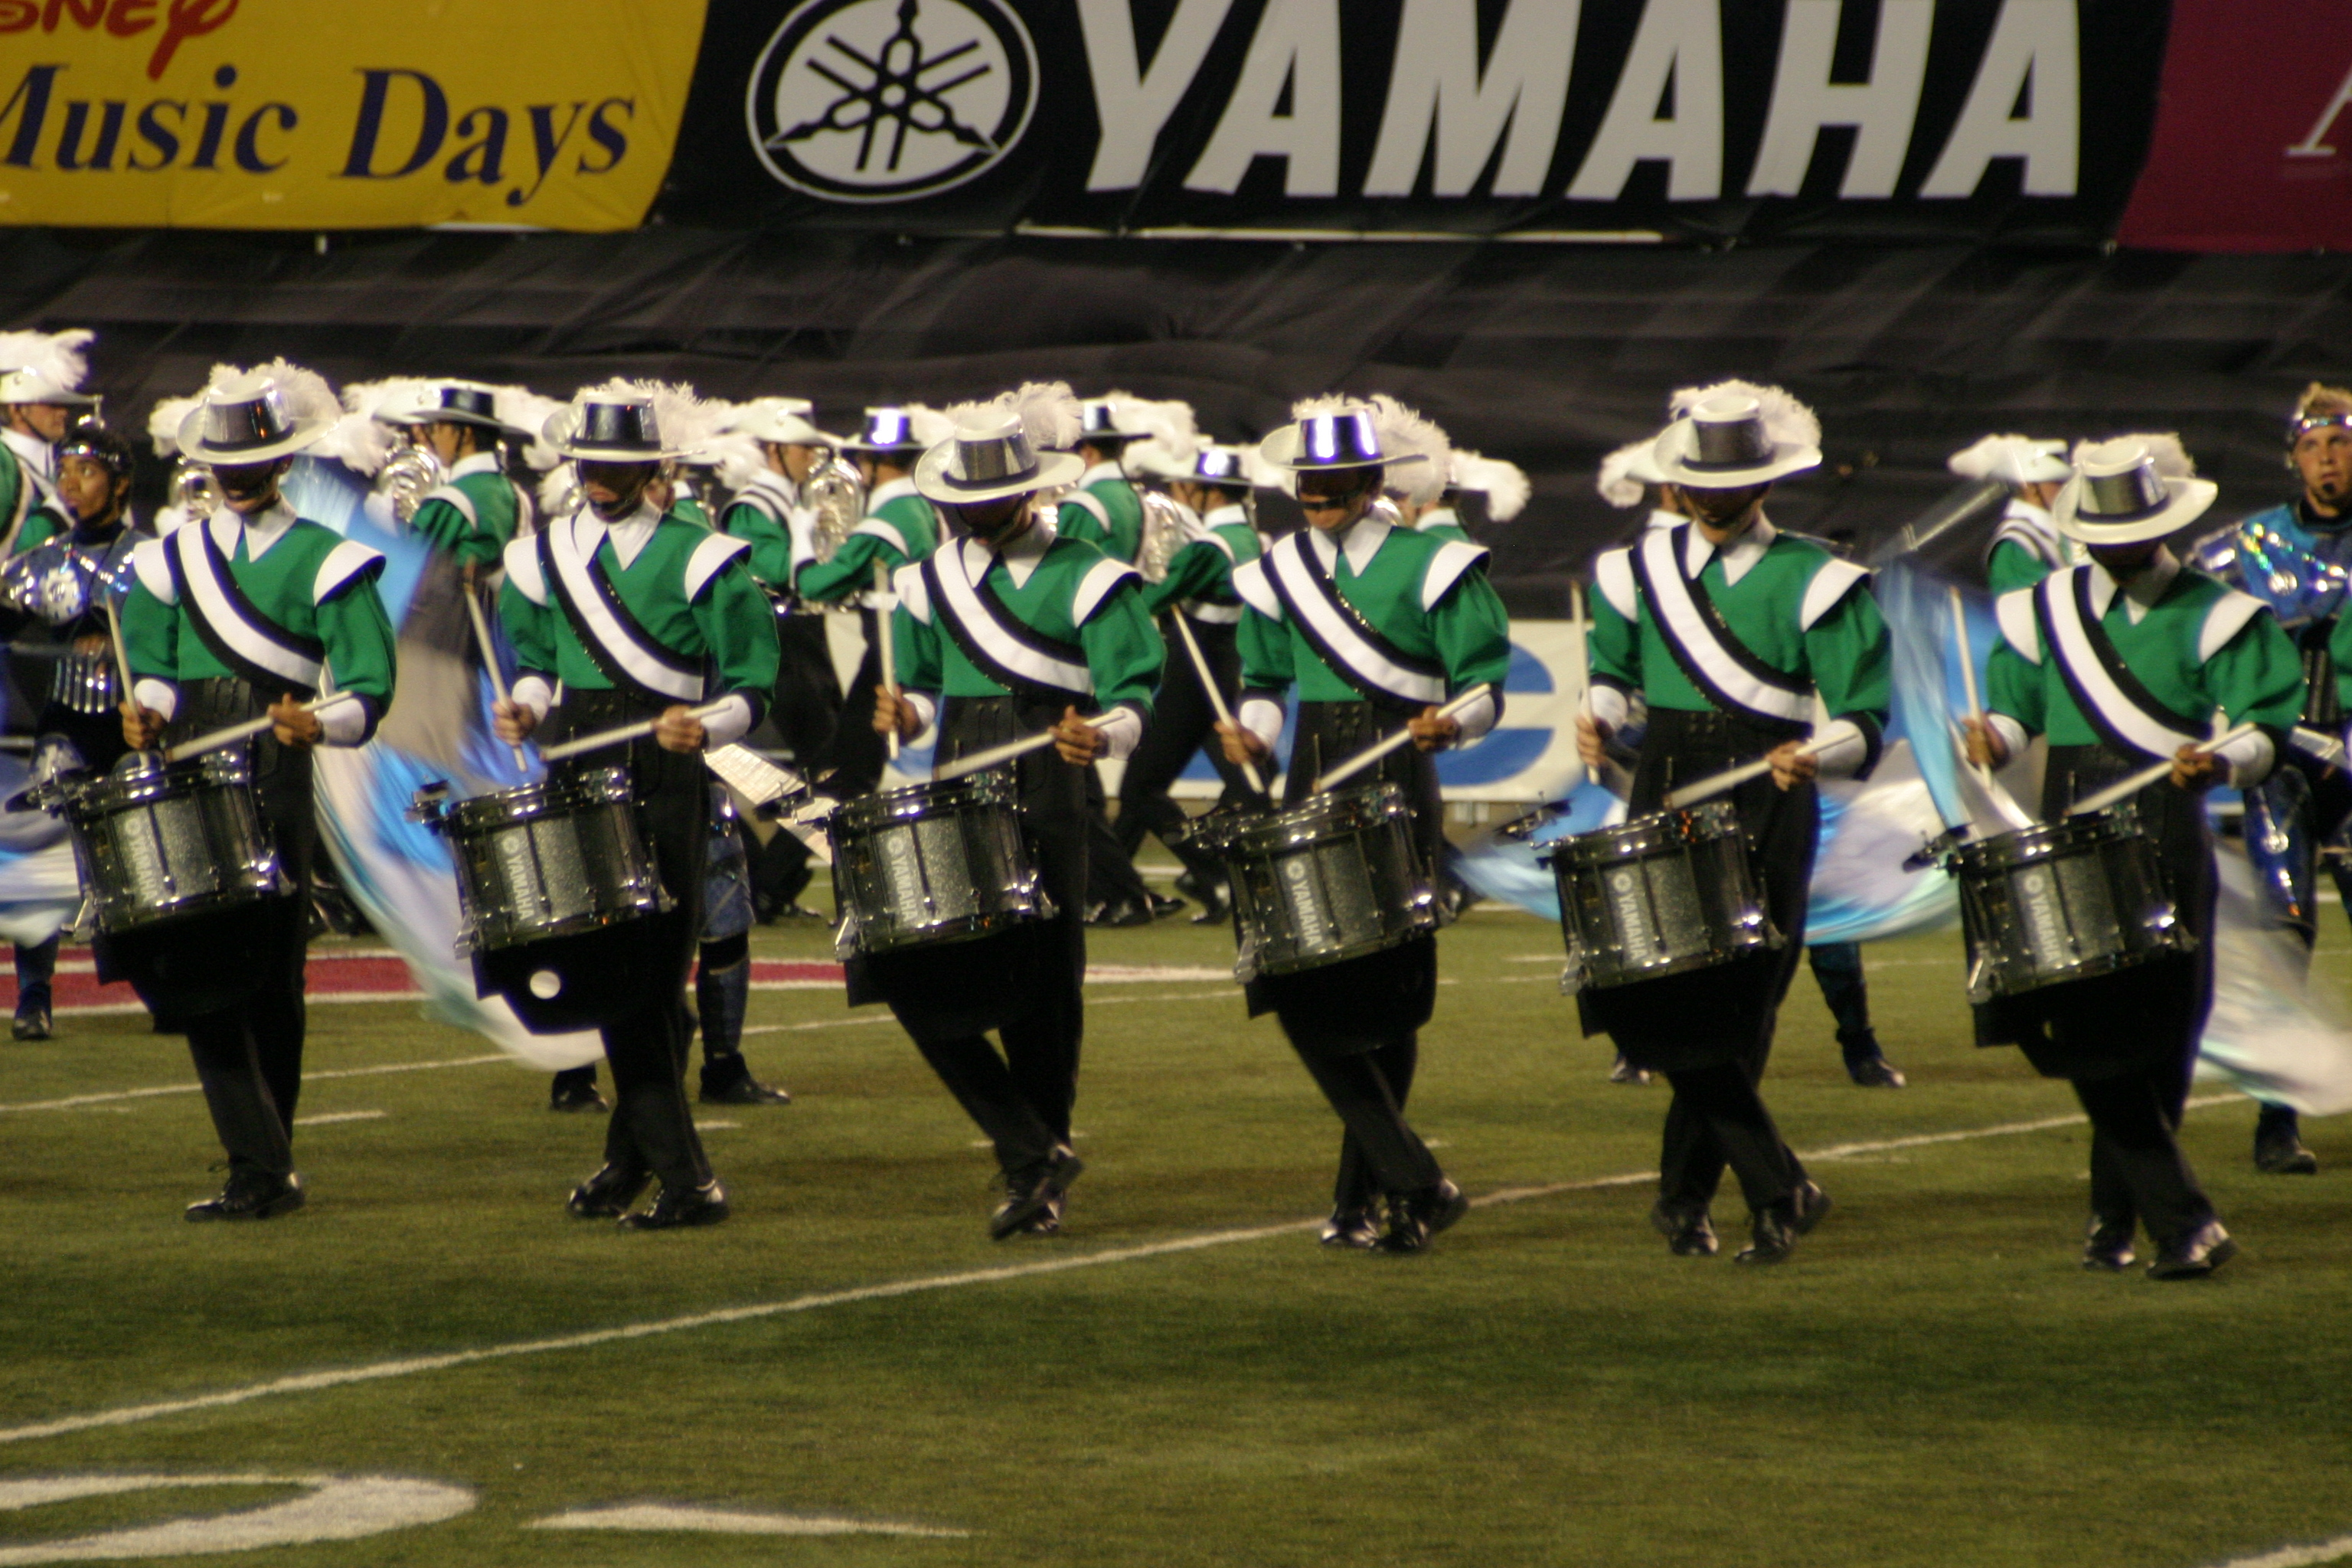 The Cavaliers Drum and Bugle Corps